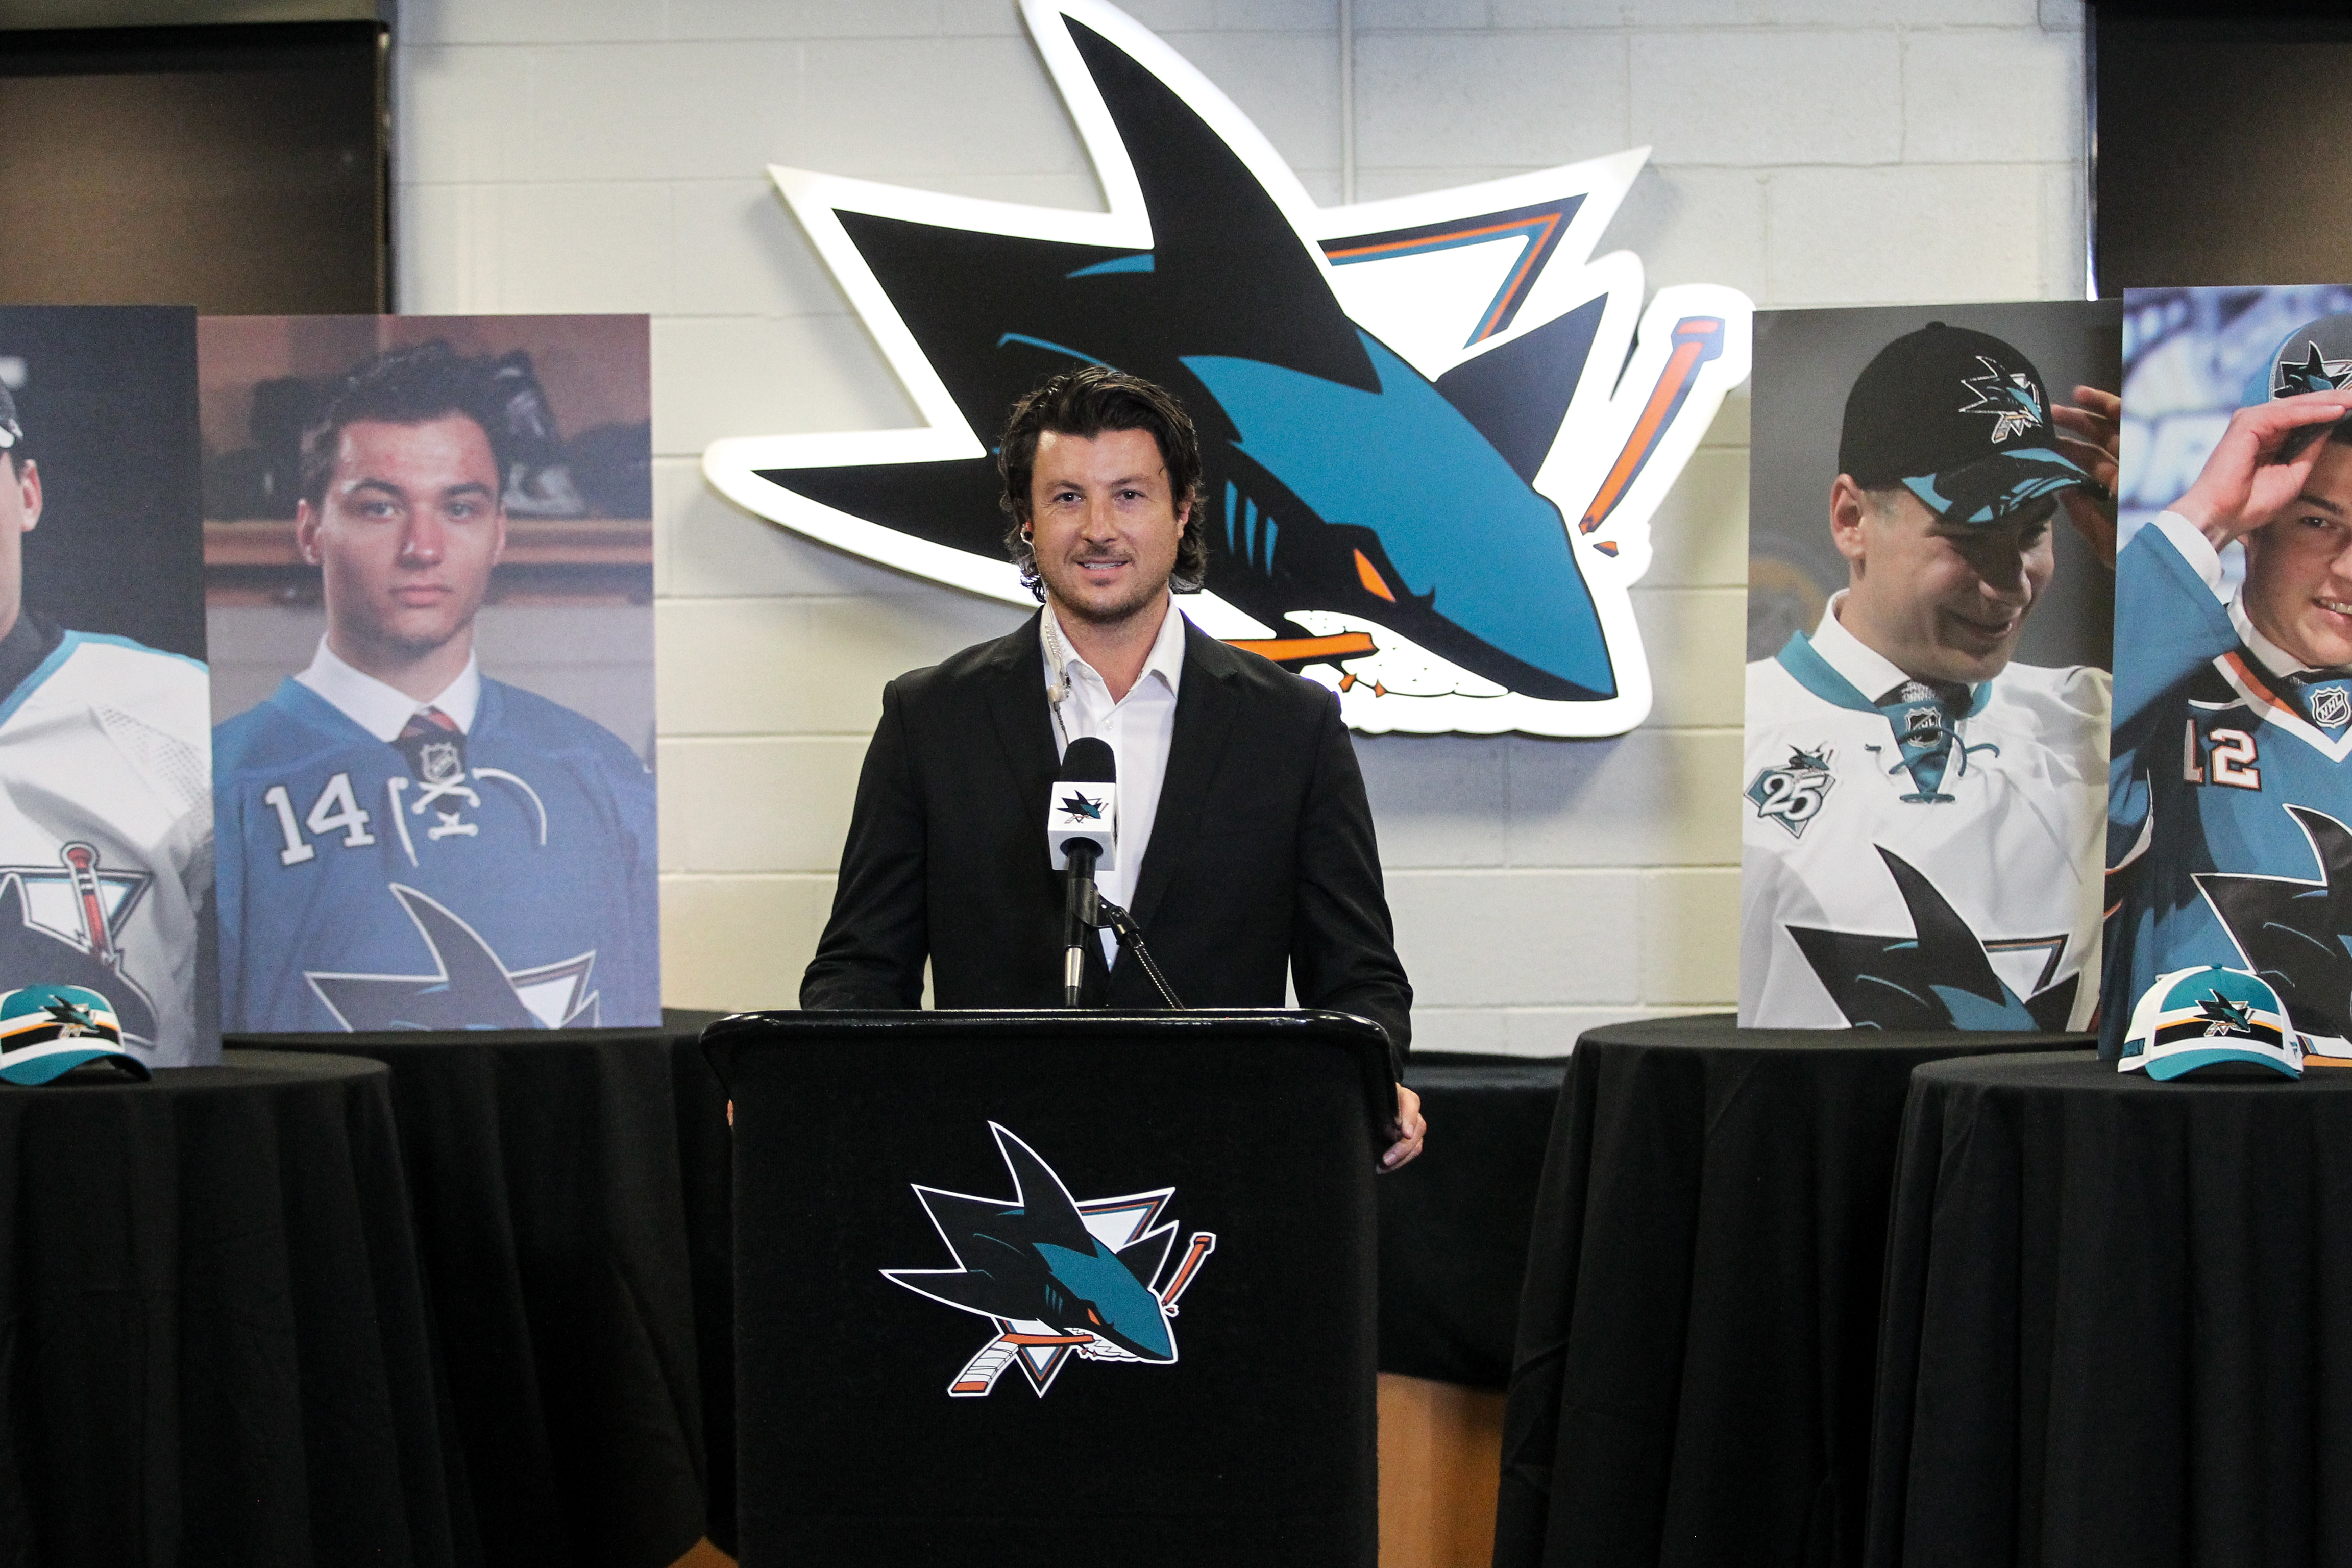 SAN JOSE, CA - OCTOBER 06: San Jose Sharks Director of Scouting Doug Wilson Jr. announces forward Ozzy Weisblatt as the 31st overall pick during Round One of the San Jose Sharks 2020 NHL Draft at SAP Center on October 06, 2020 in San Jose, California. The 2020 NHL Draft was held virtually due to the ongoing Coronavirus pandemic.